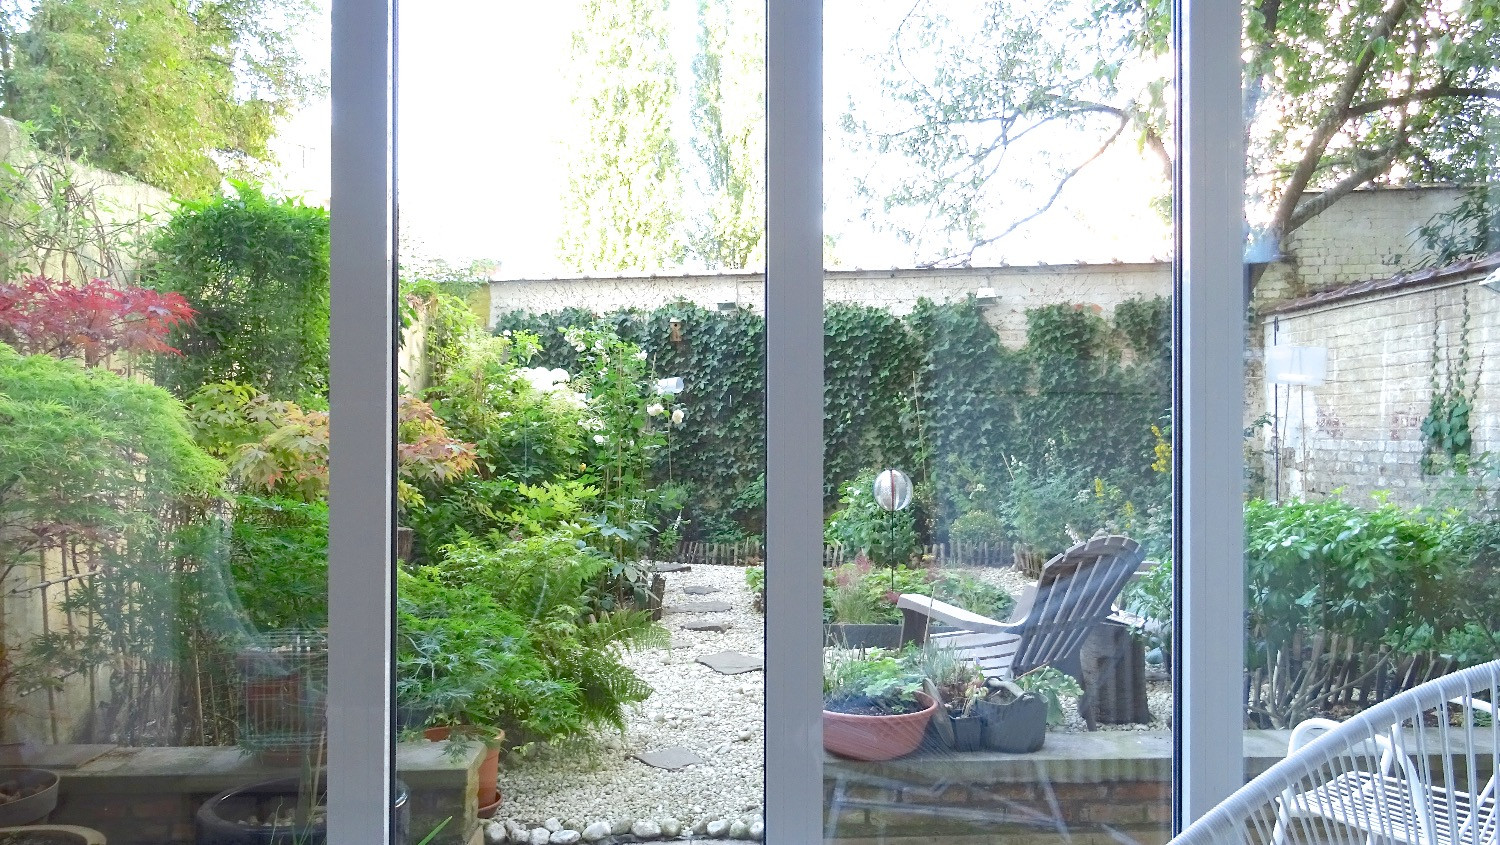 Garden view from sitting area